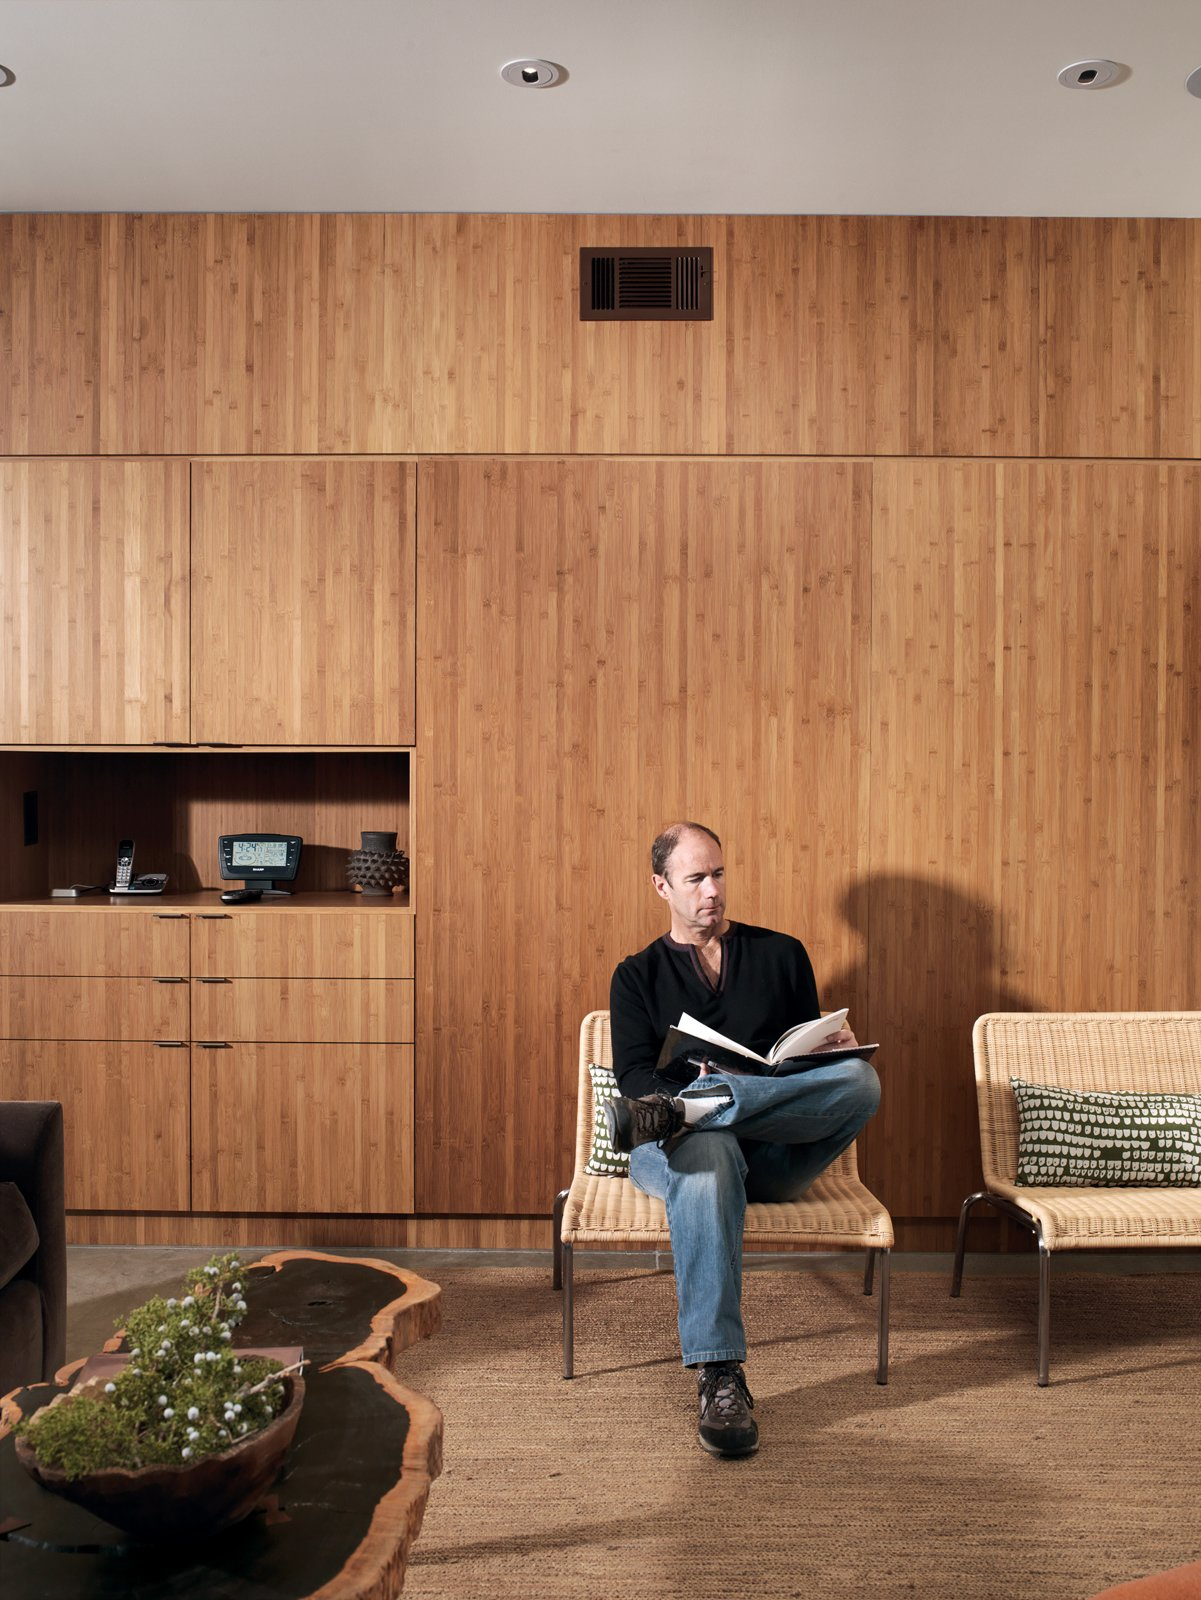 #seatingdesign #interior #inside #indoor #Plyboo #wall #coffeetable #livingroom #reading #wood  100+ Best Modern Seating Designs by Dwell